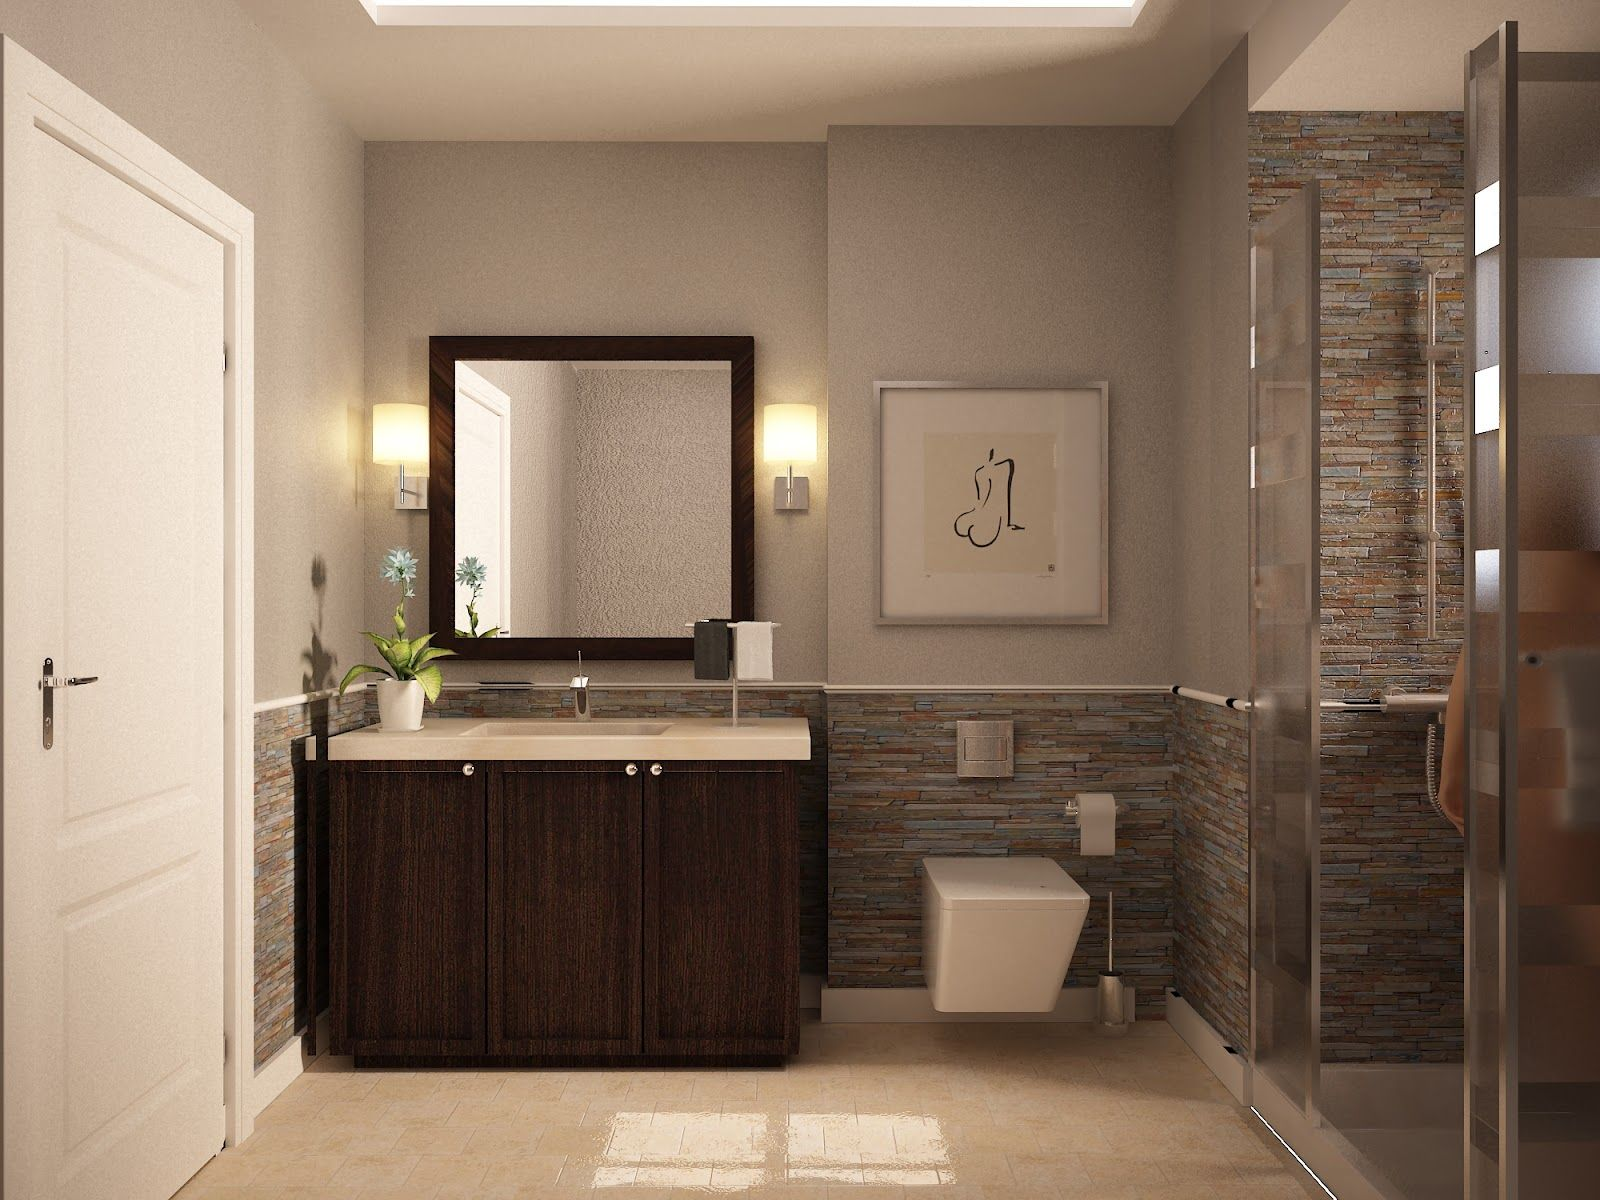 Best Bathroom Ideas Images Onbathroom Ideas Wall